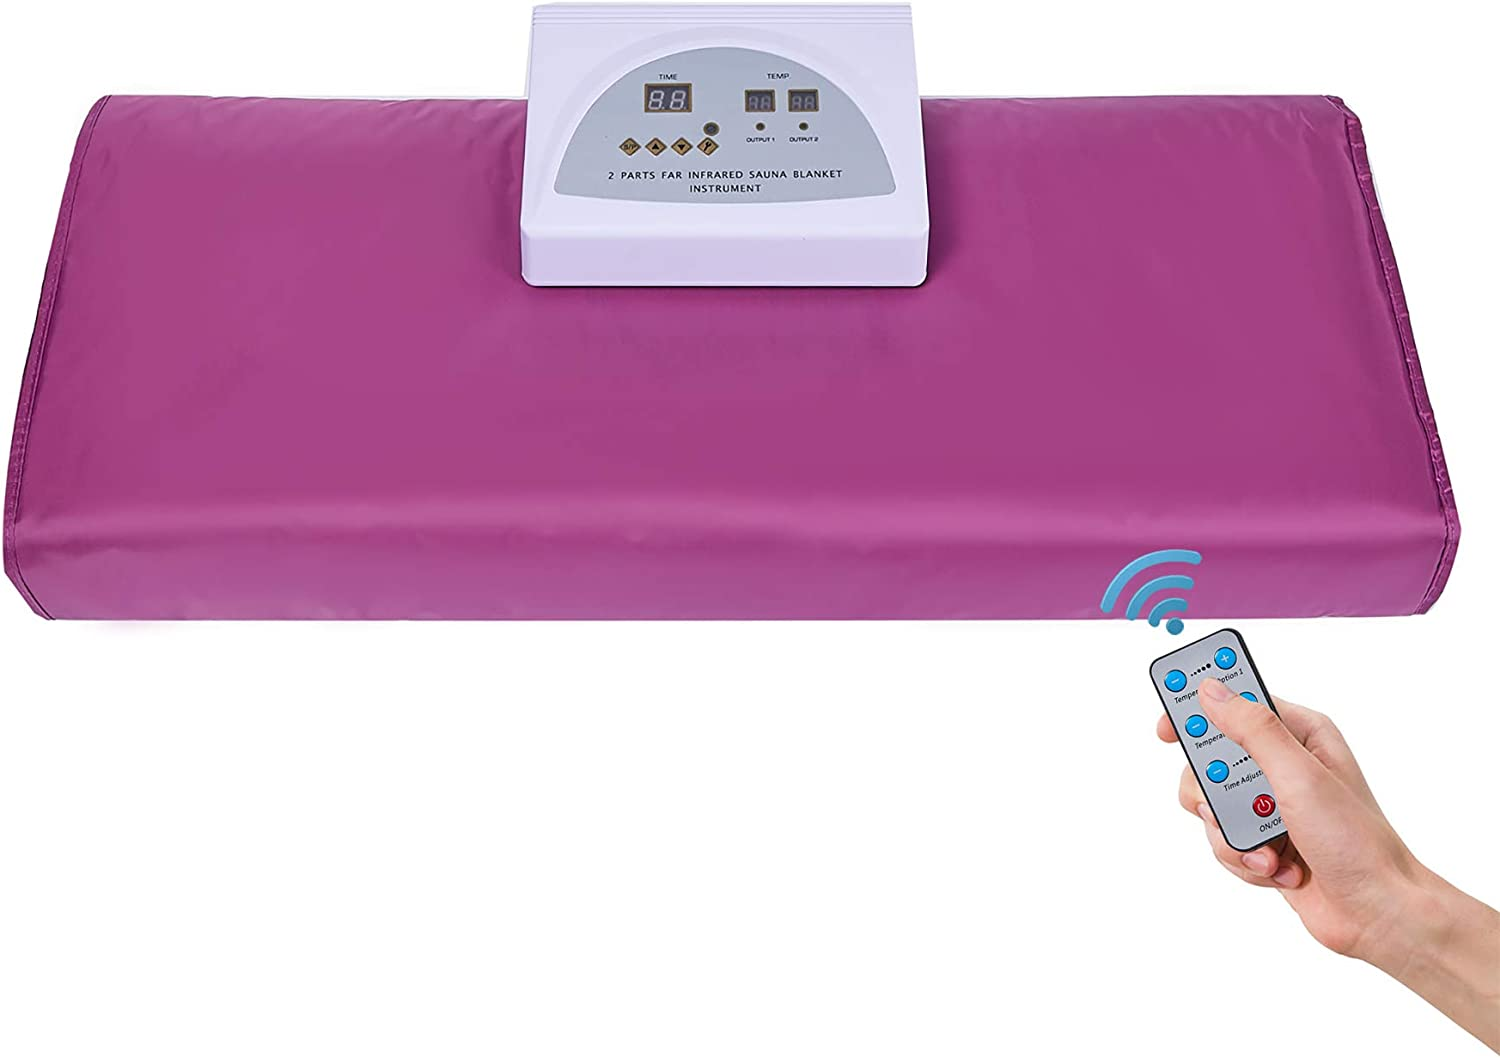 Jolisely Infrared Personal Sauna Blanket, Fast Sweating Professional Fitness Machine at Home for Weight Loss and Detoxification(with Button Battery/110V US Plug)(Purple)